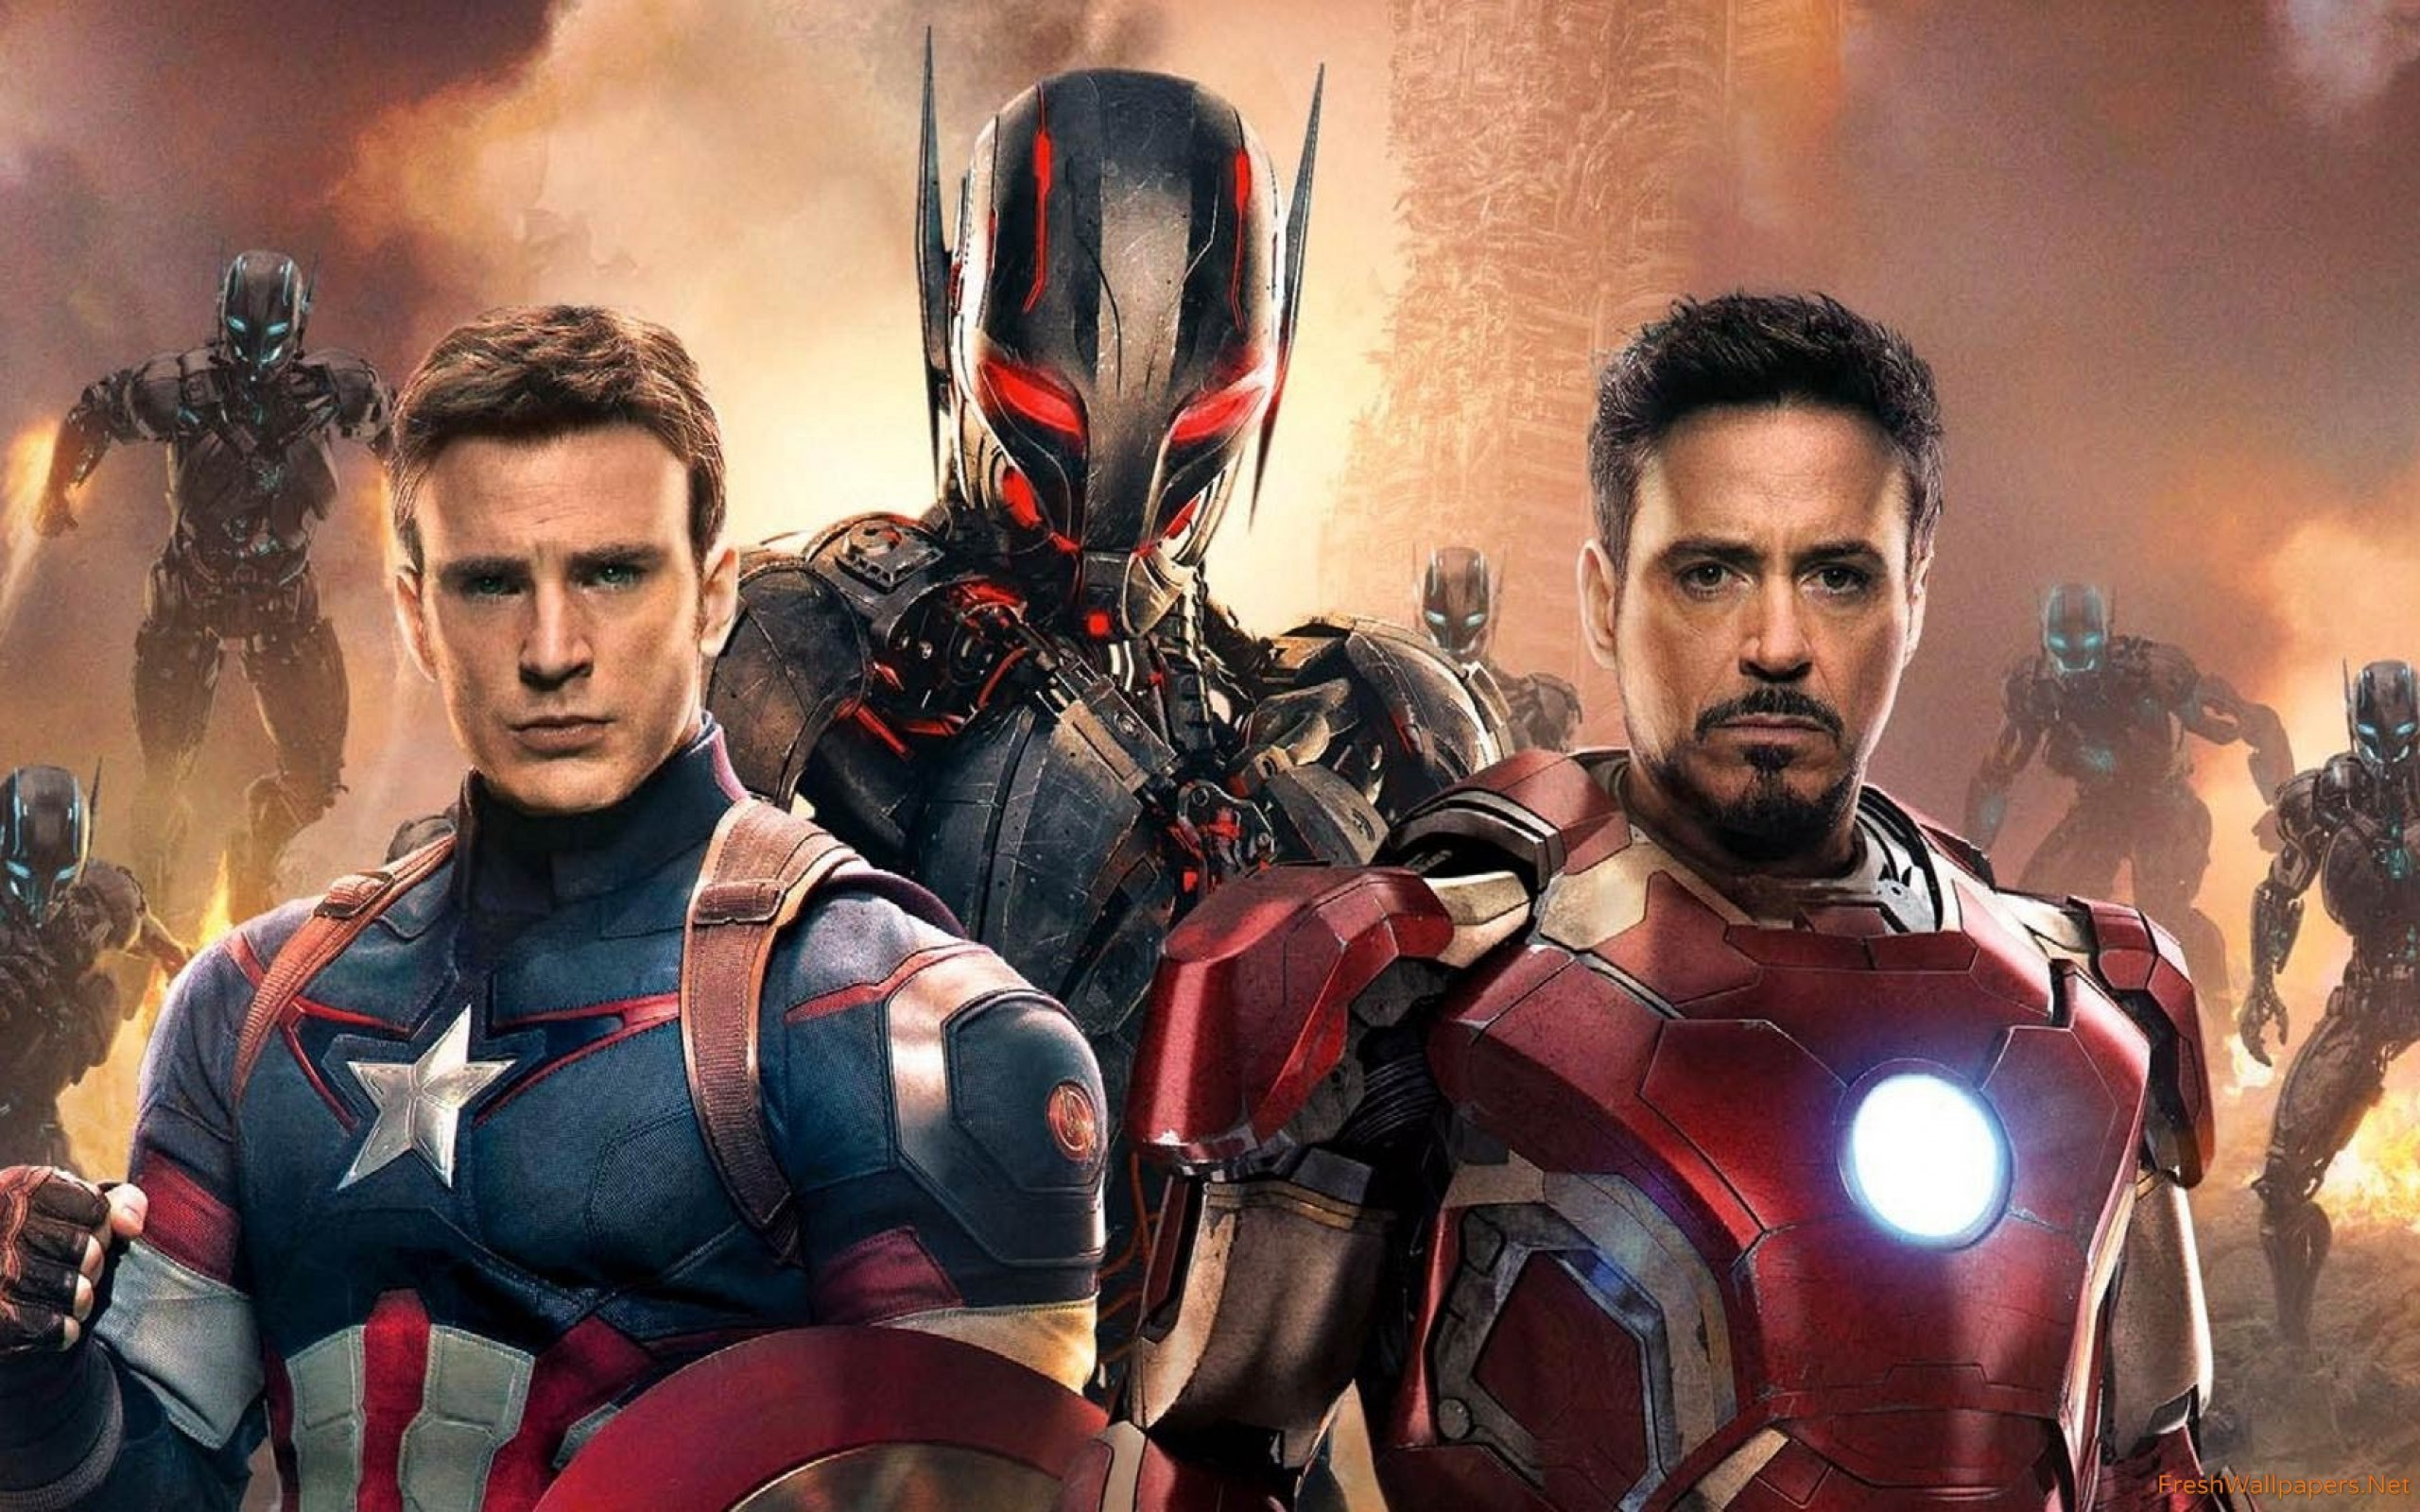 2560x1600 Captain America Avengers Age of Ultron wallpapers (51 Wallpapers) – HD  Wallpapers